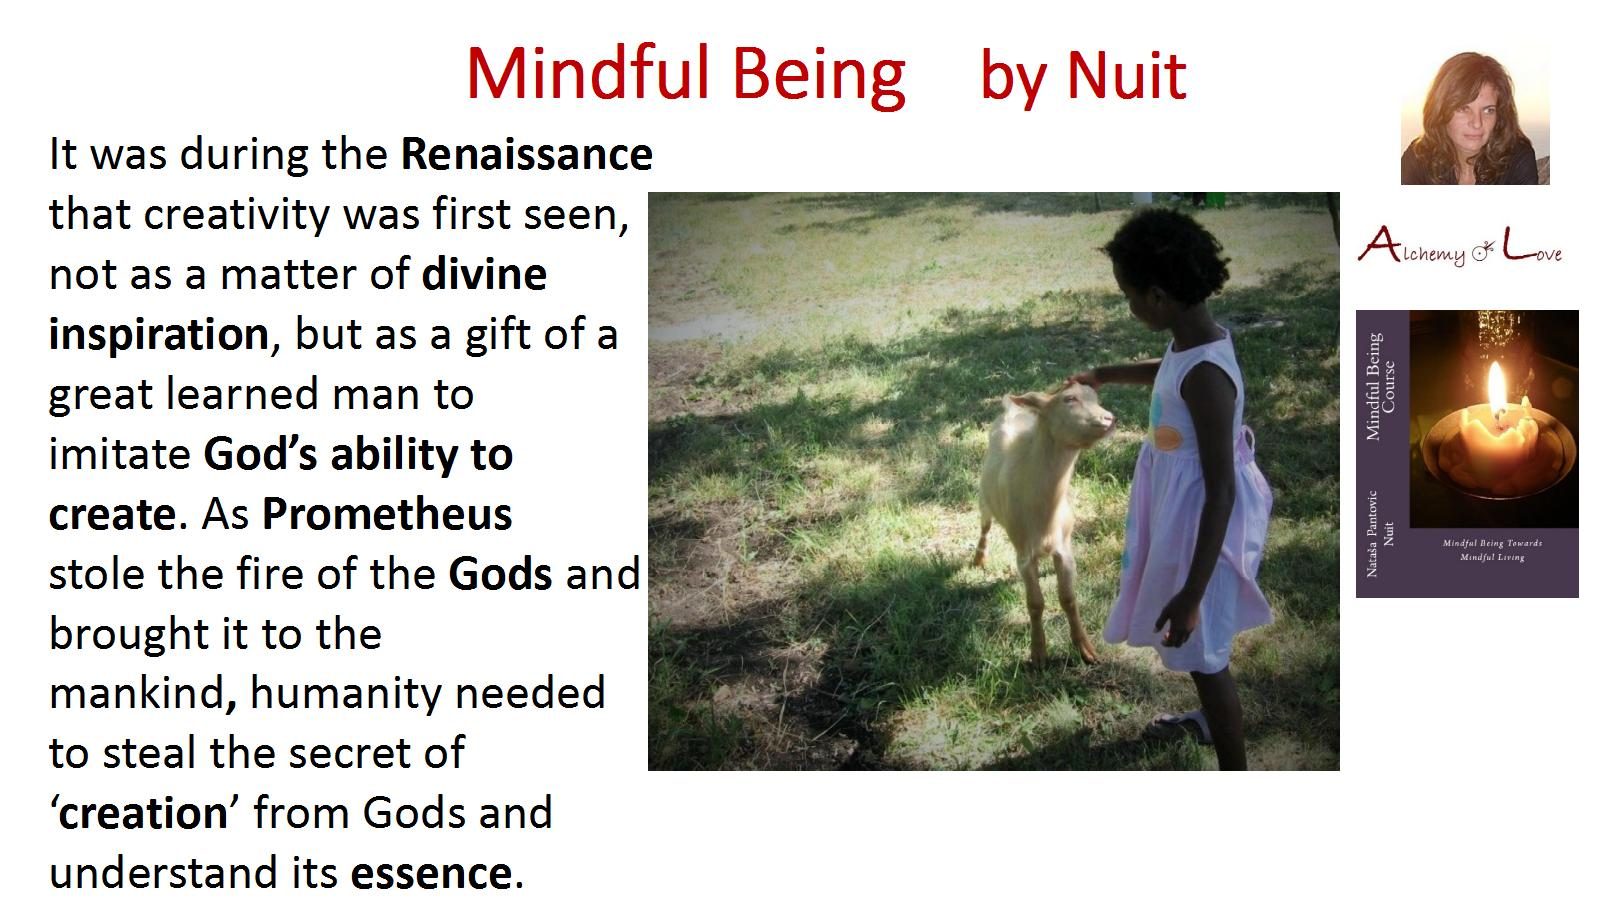 Creativity and divine inspiration quote from Mindful Being towards Mindful Living Course by Nataša Pantović Nuit